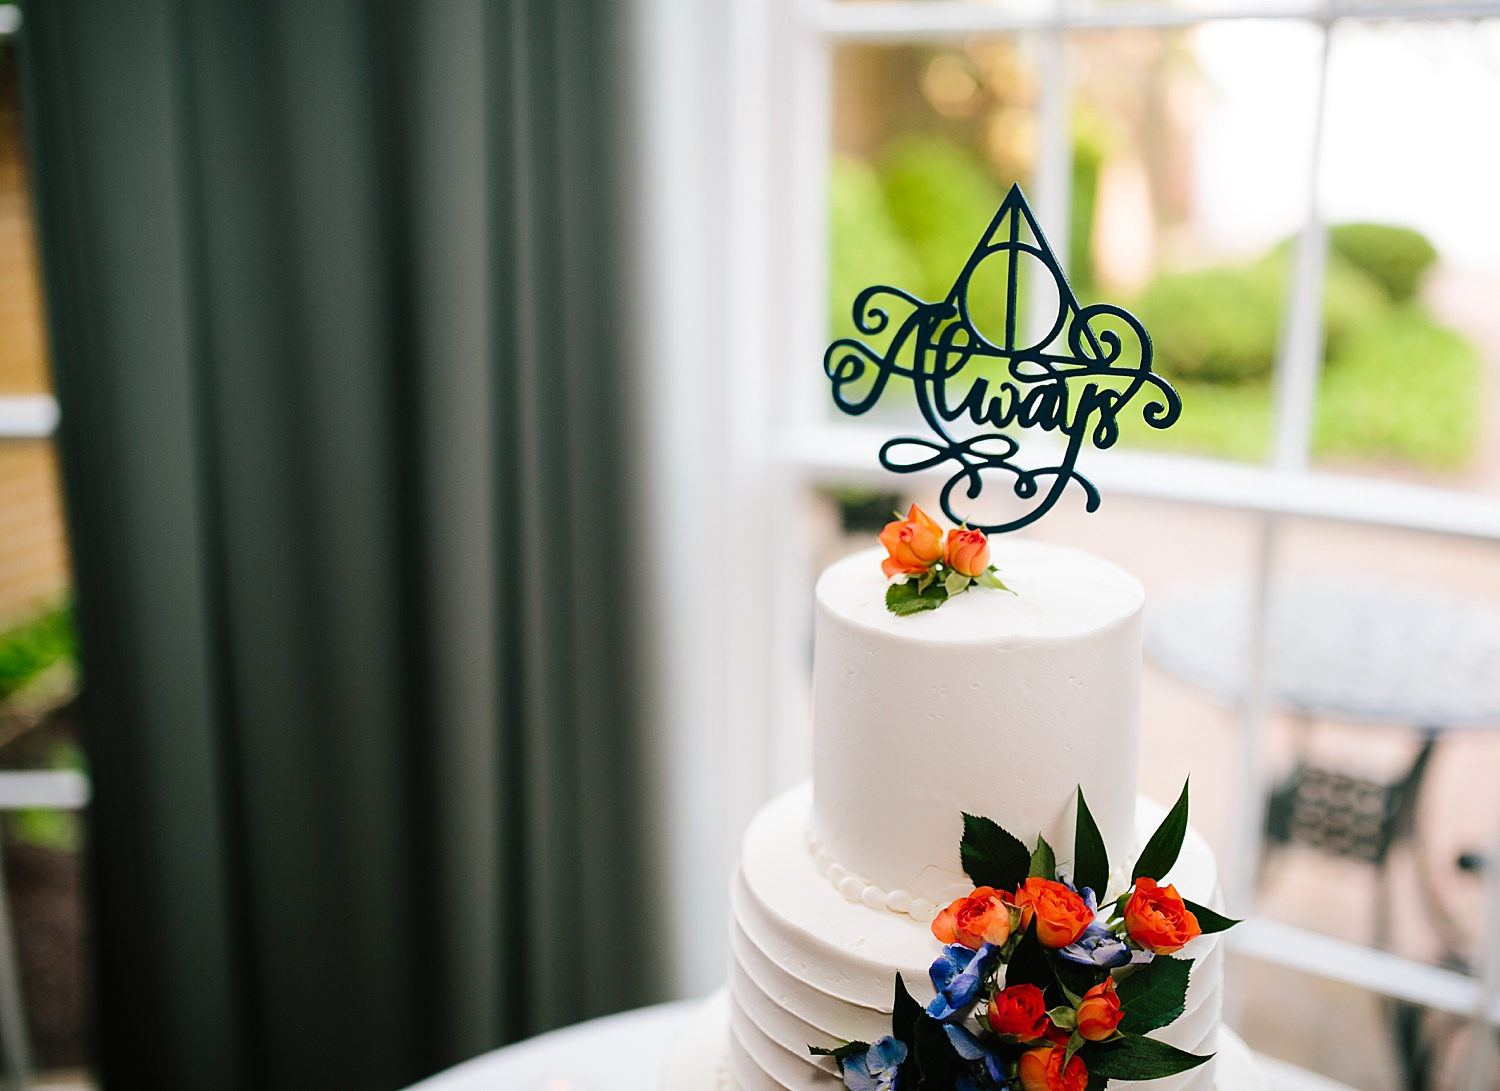 angelabruce_tidewater_inn_maryland_harrypotter_nerdy_wedding_image_059.jpg